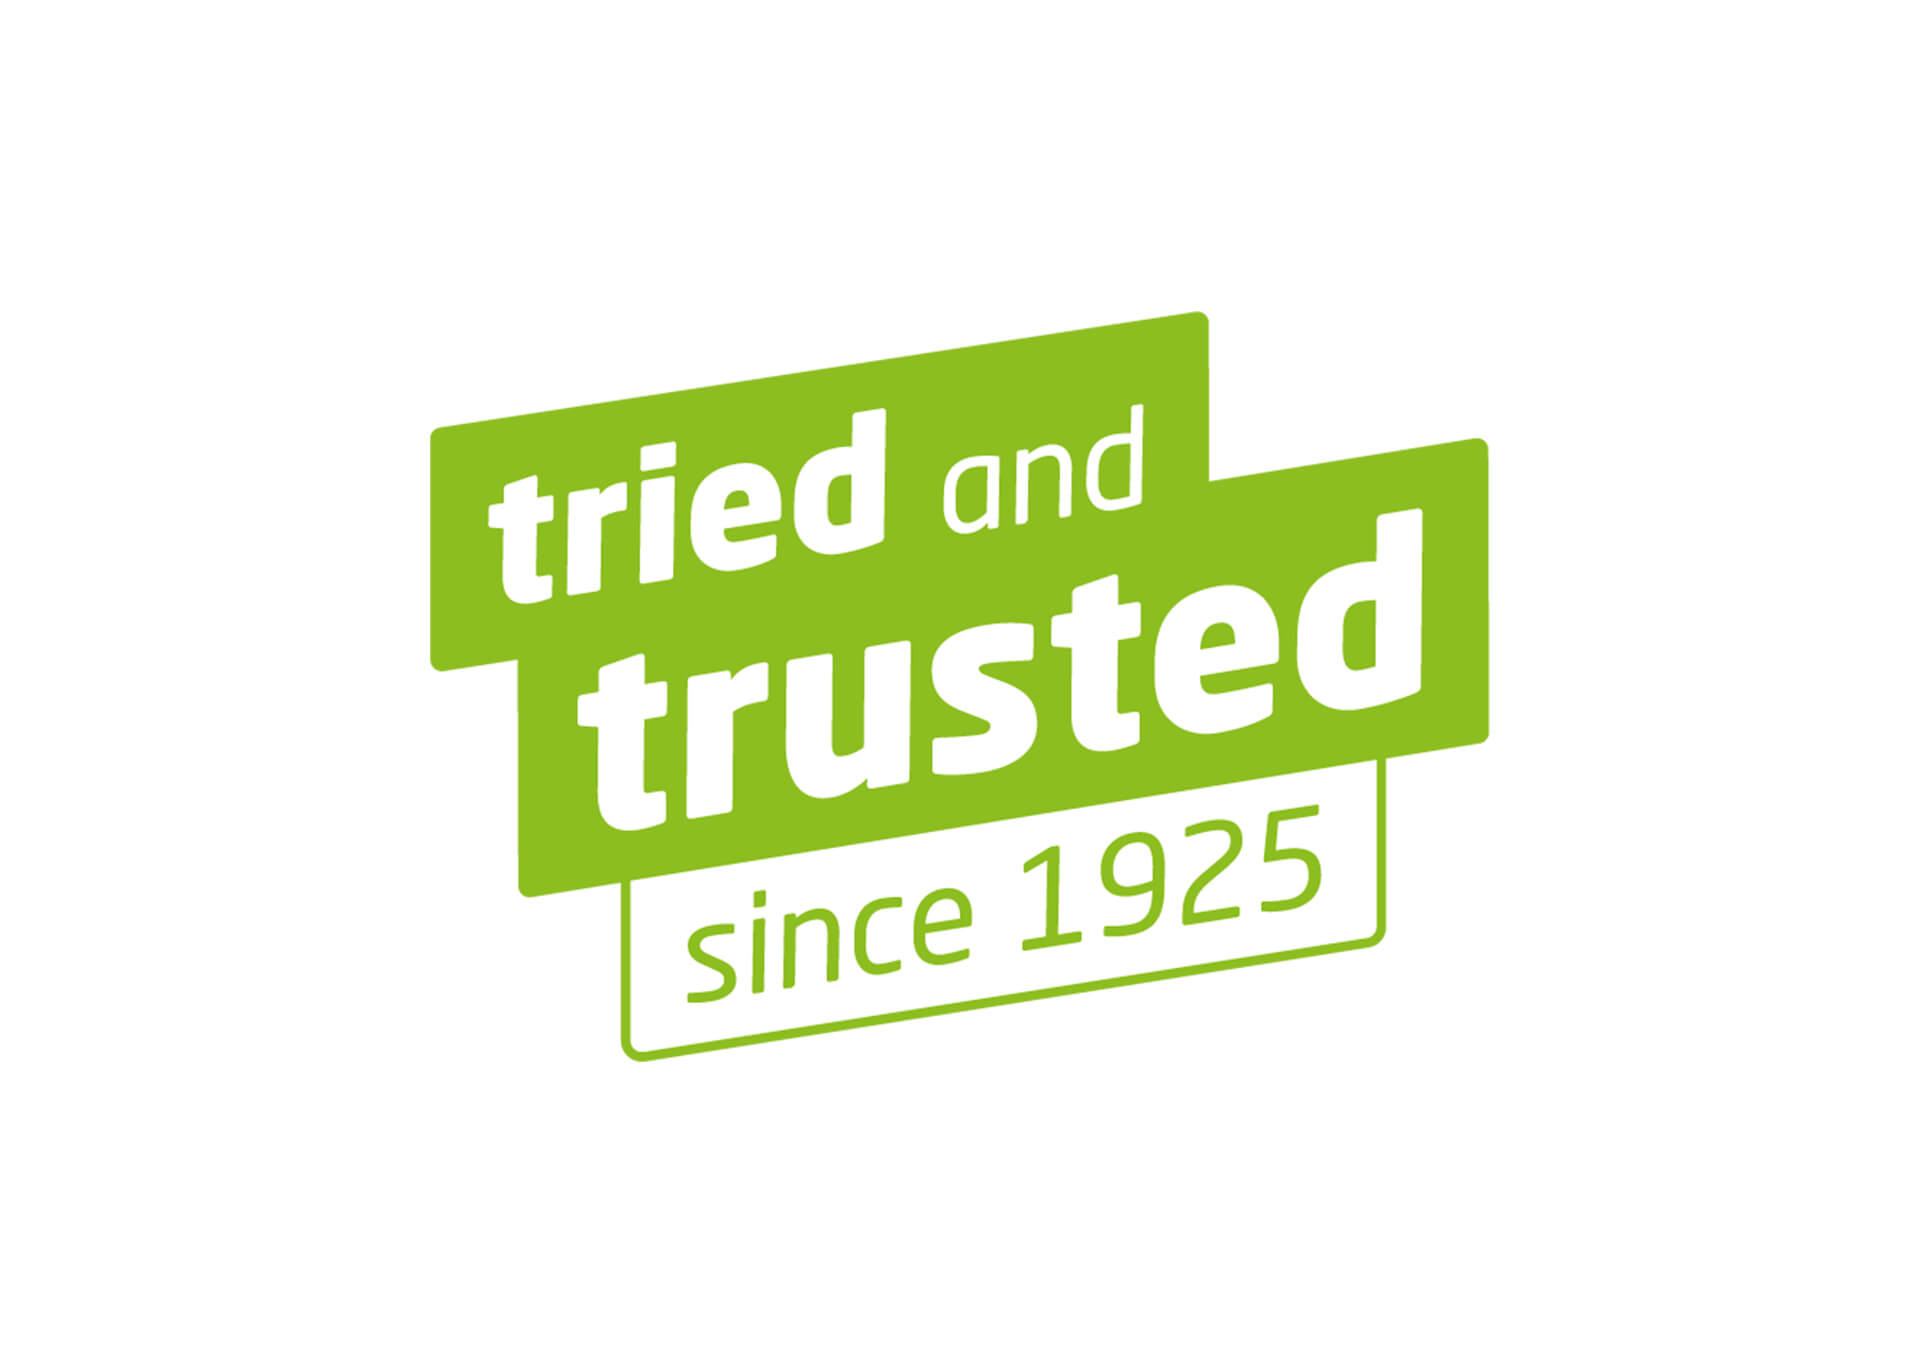 tried and trusted since 1925